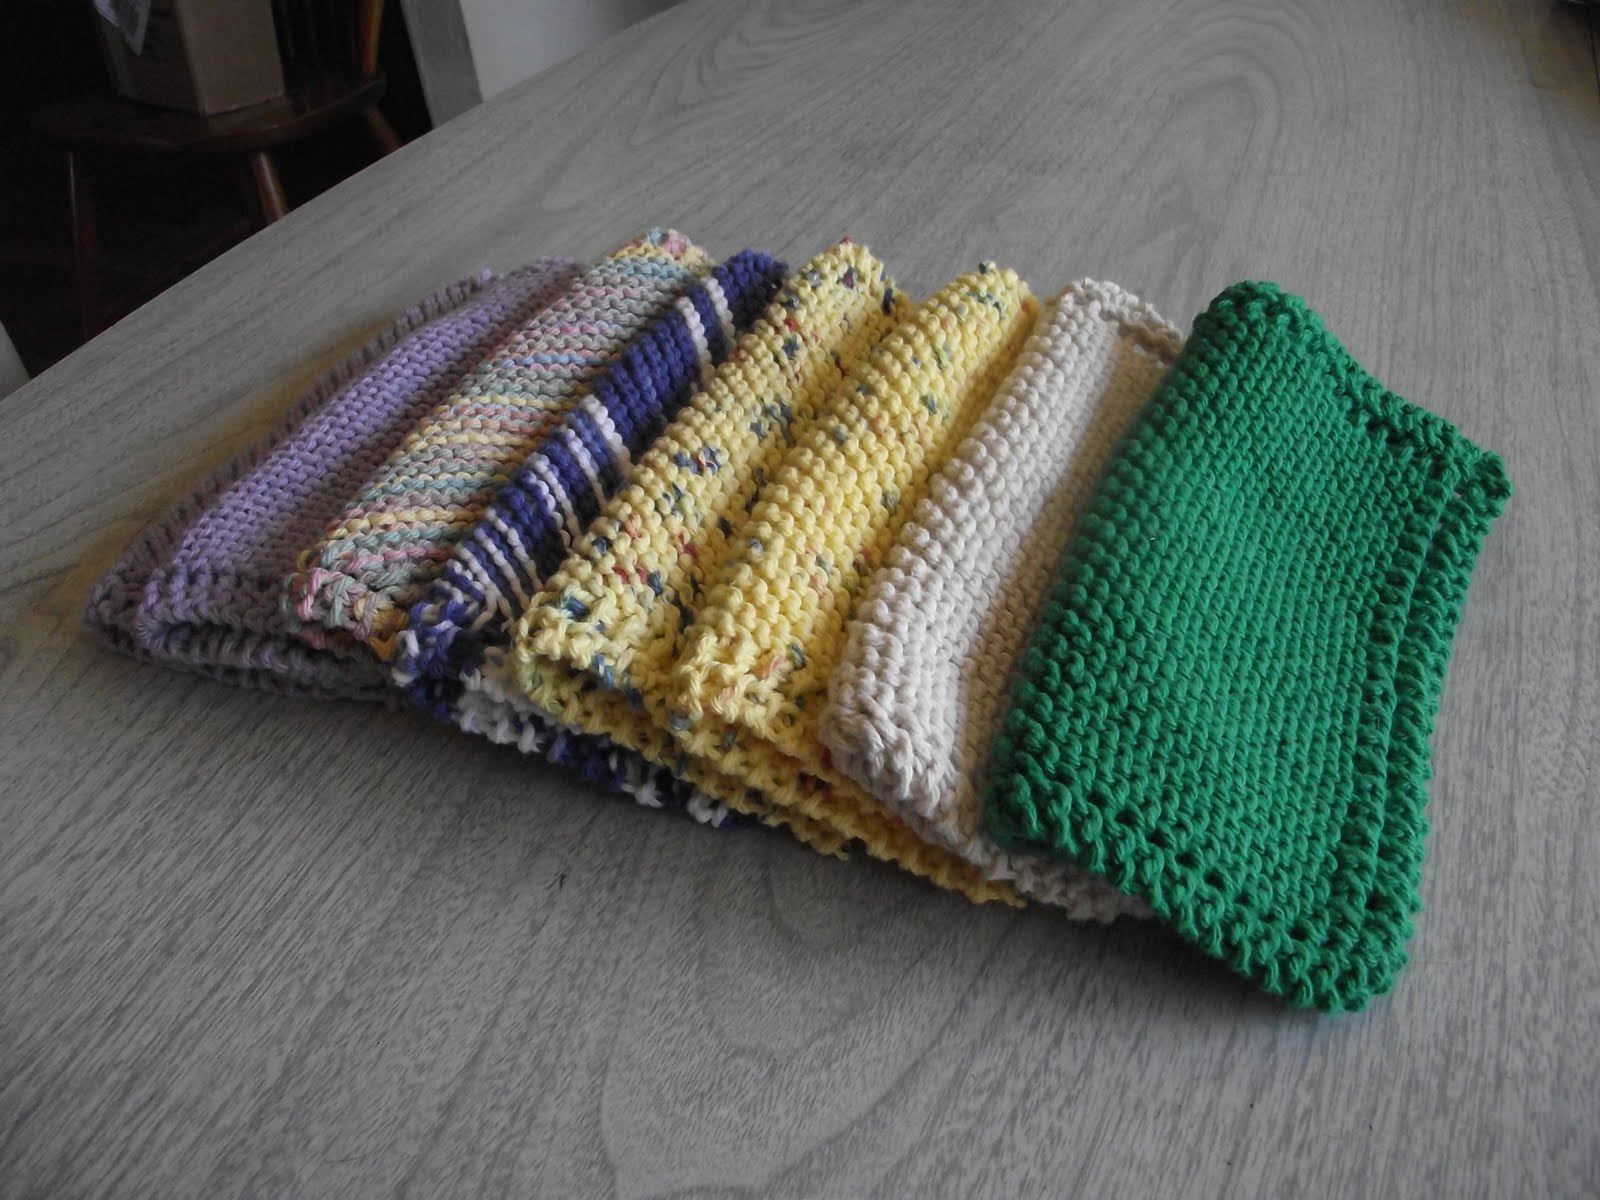 KNITTED DISHCLOTHS PATTERNS – Browse Patterns